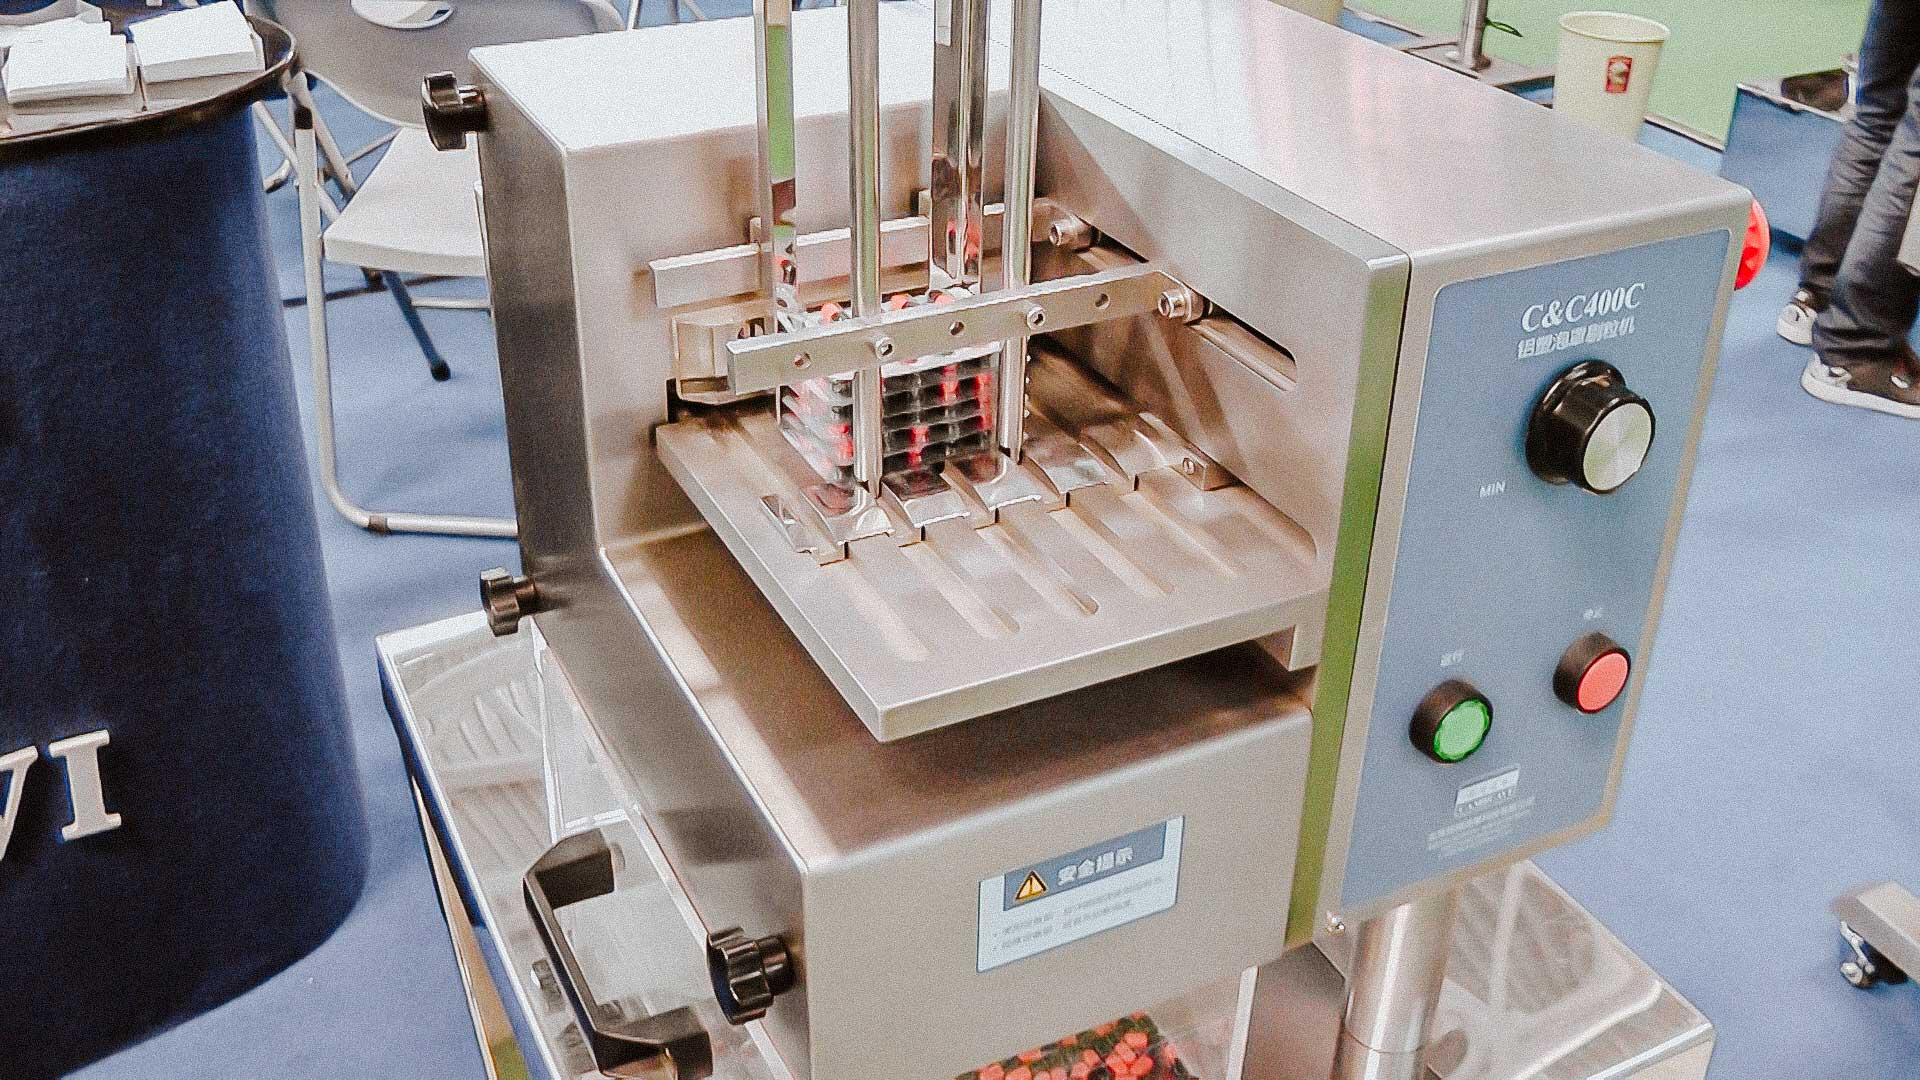 Automatic equipment for removing and cleaning gelatin capsules from the blister